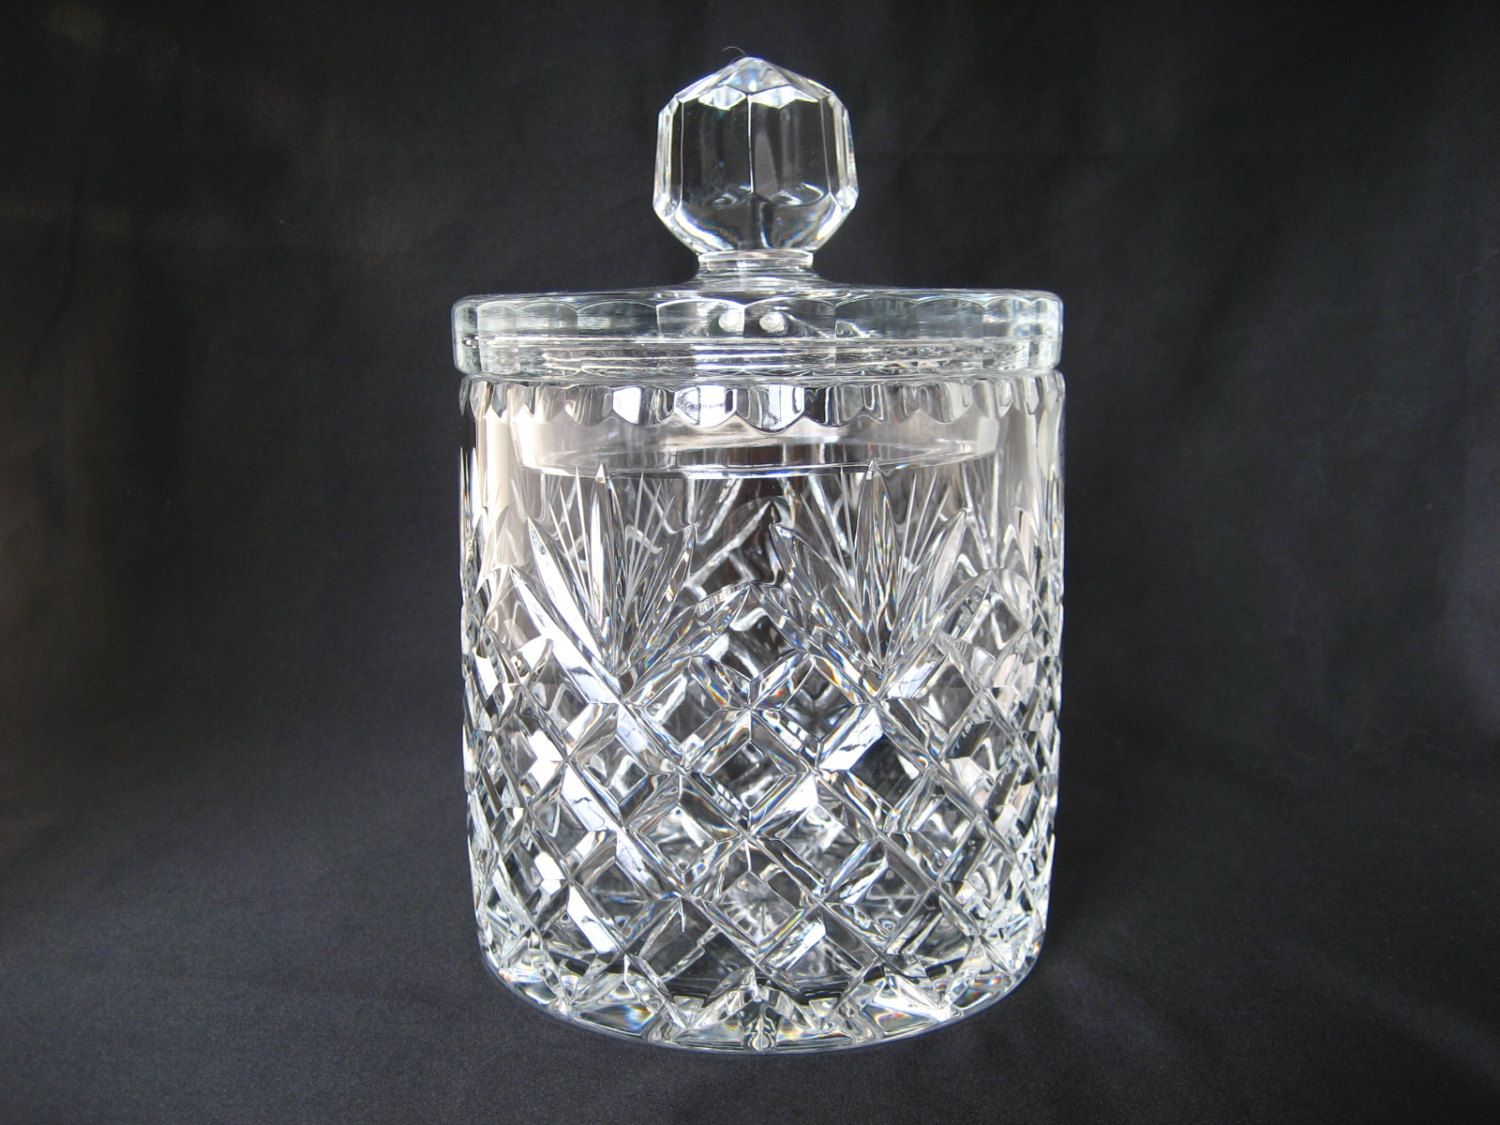 Vintage Crystal Clear Gl Cookie Jar With Lid Lidded Covered Large Candy Buffet Brilliant Cut Deep